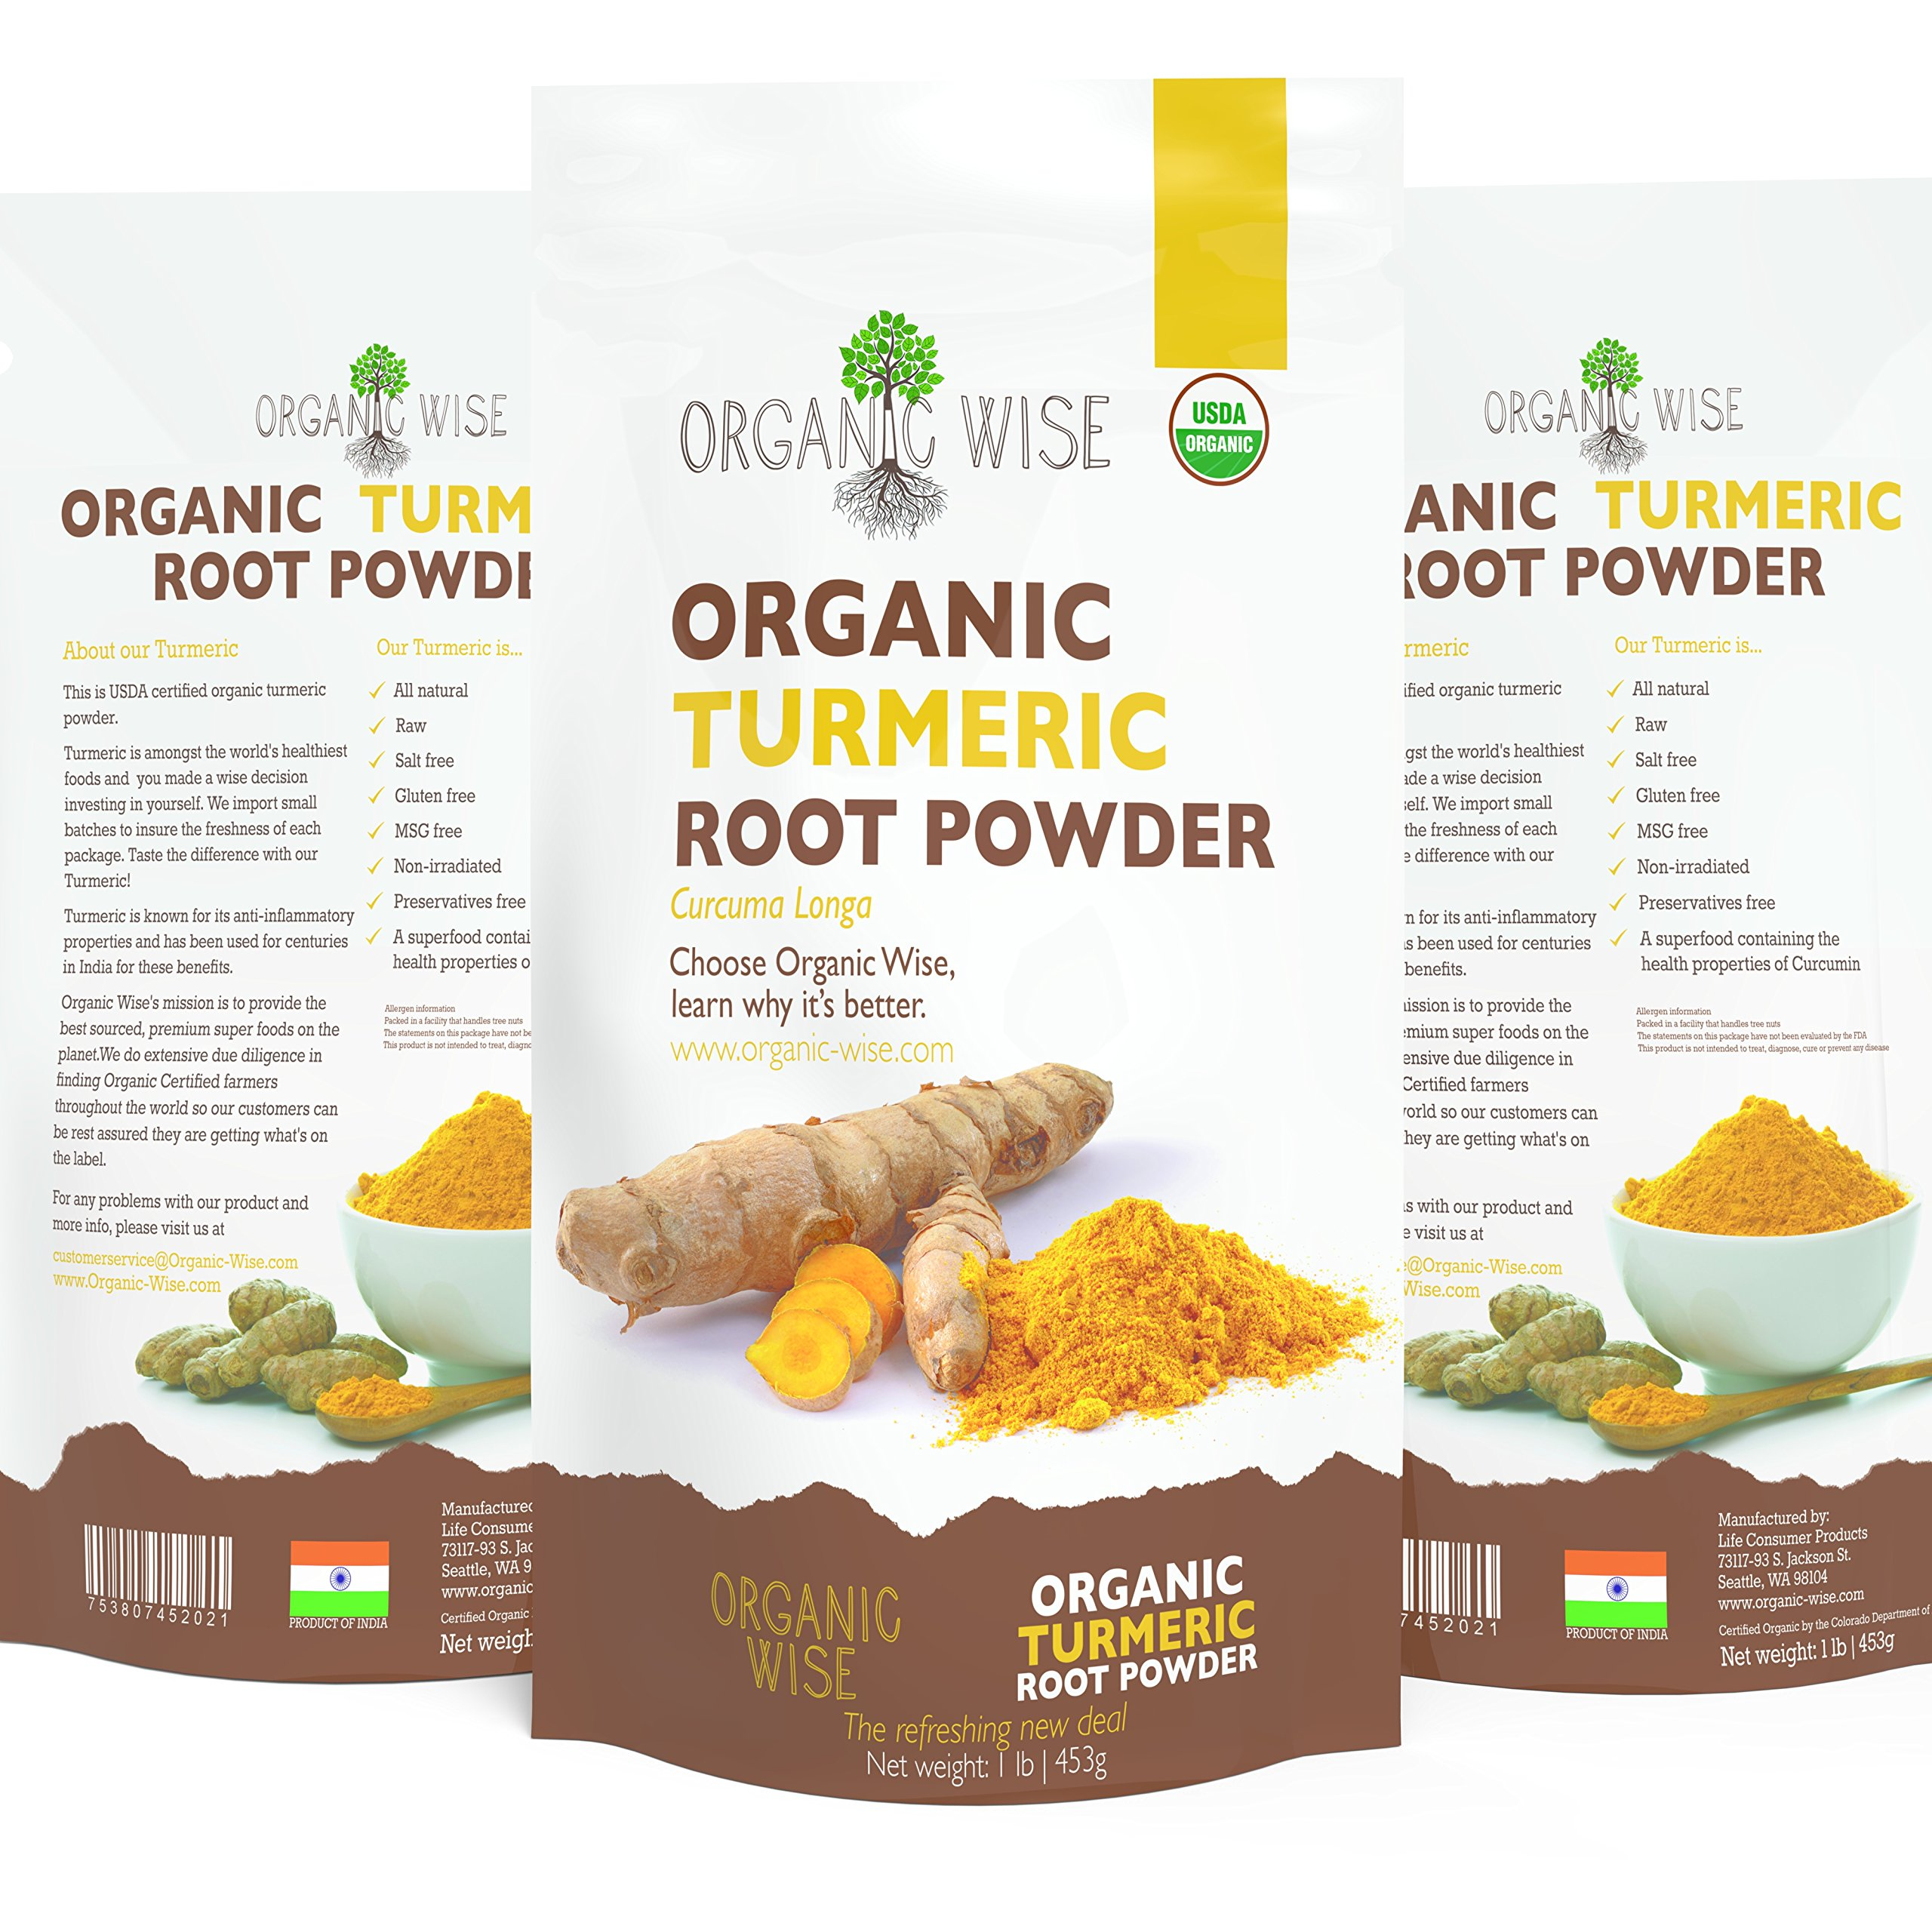 1 lb Organic Turmeric Root Powder by Organic Wise, Minimum 6.75% Curcumin Content.Tested For Heavy Metals and Packed in the USA, From India-Resealable Pouch